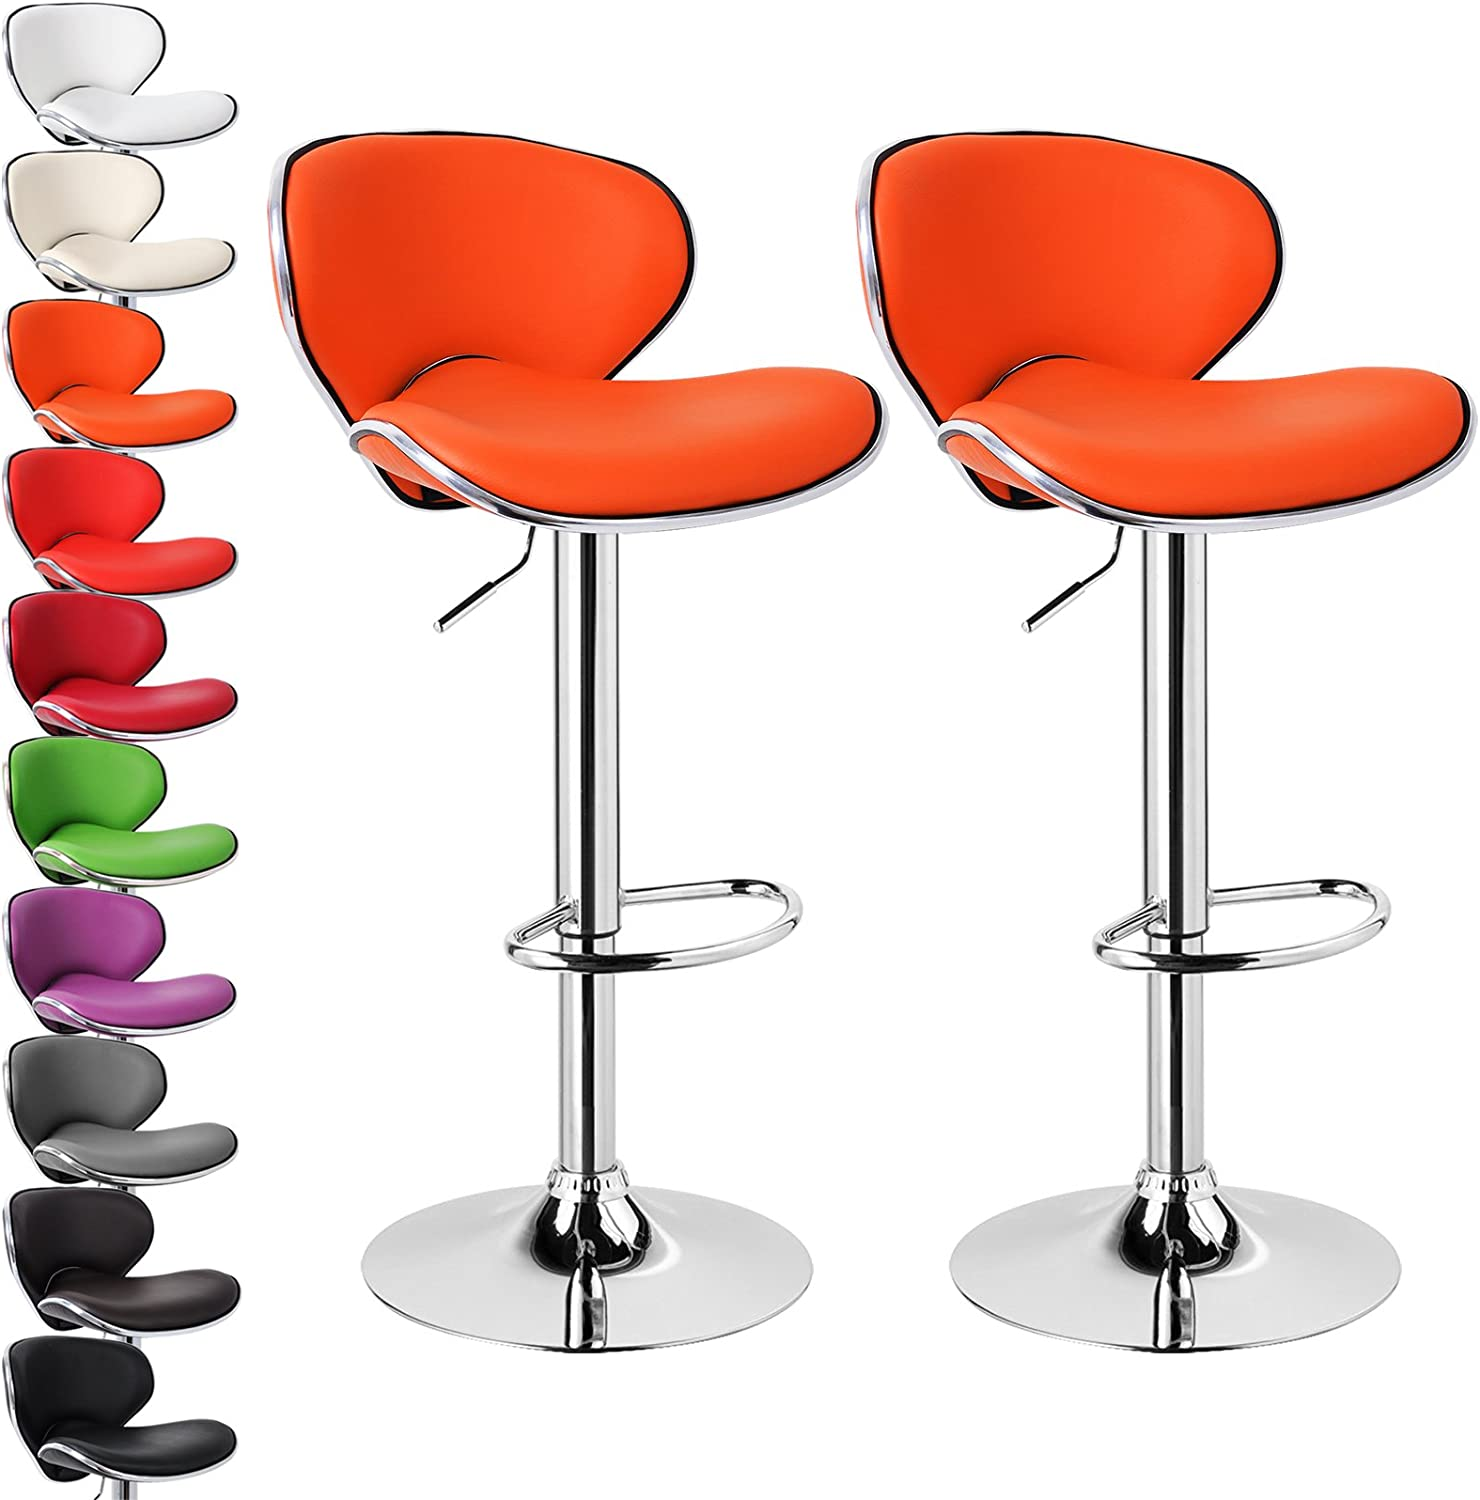 WOLTU Bar Stools Brown Bar Chairs Breakfast Dining Stools for Kitchen Island Counter Bar Stools Set of 2 pcs Leatherette Exterior//Adjustable Swivel Gas Lift//Steel Footrest /& Base